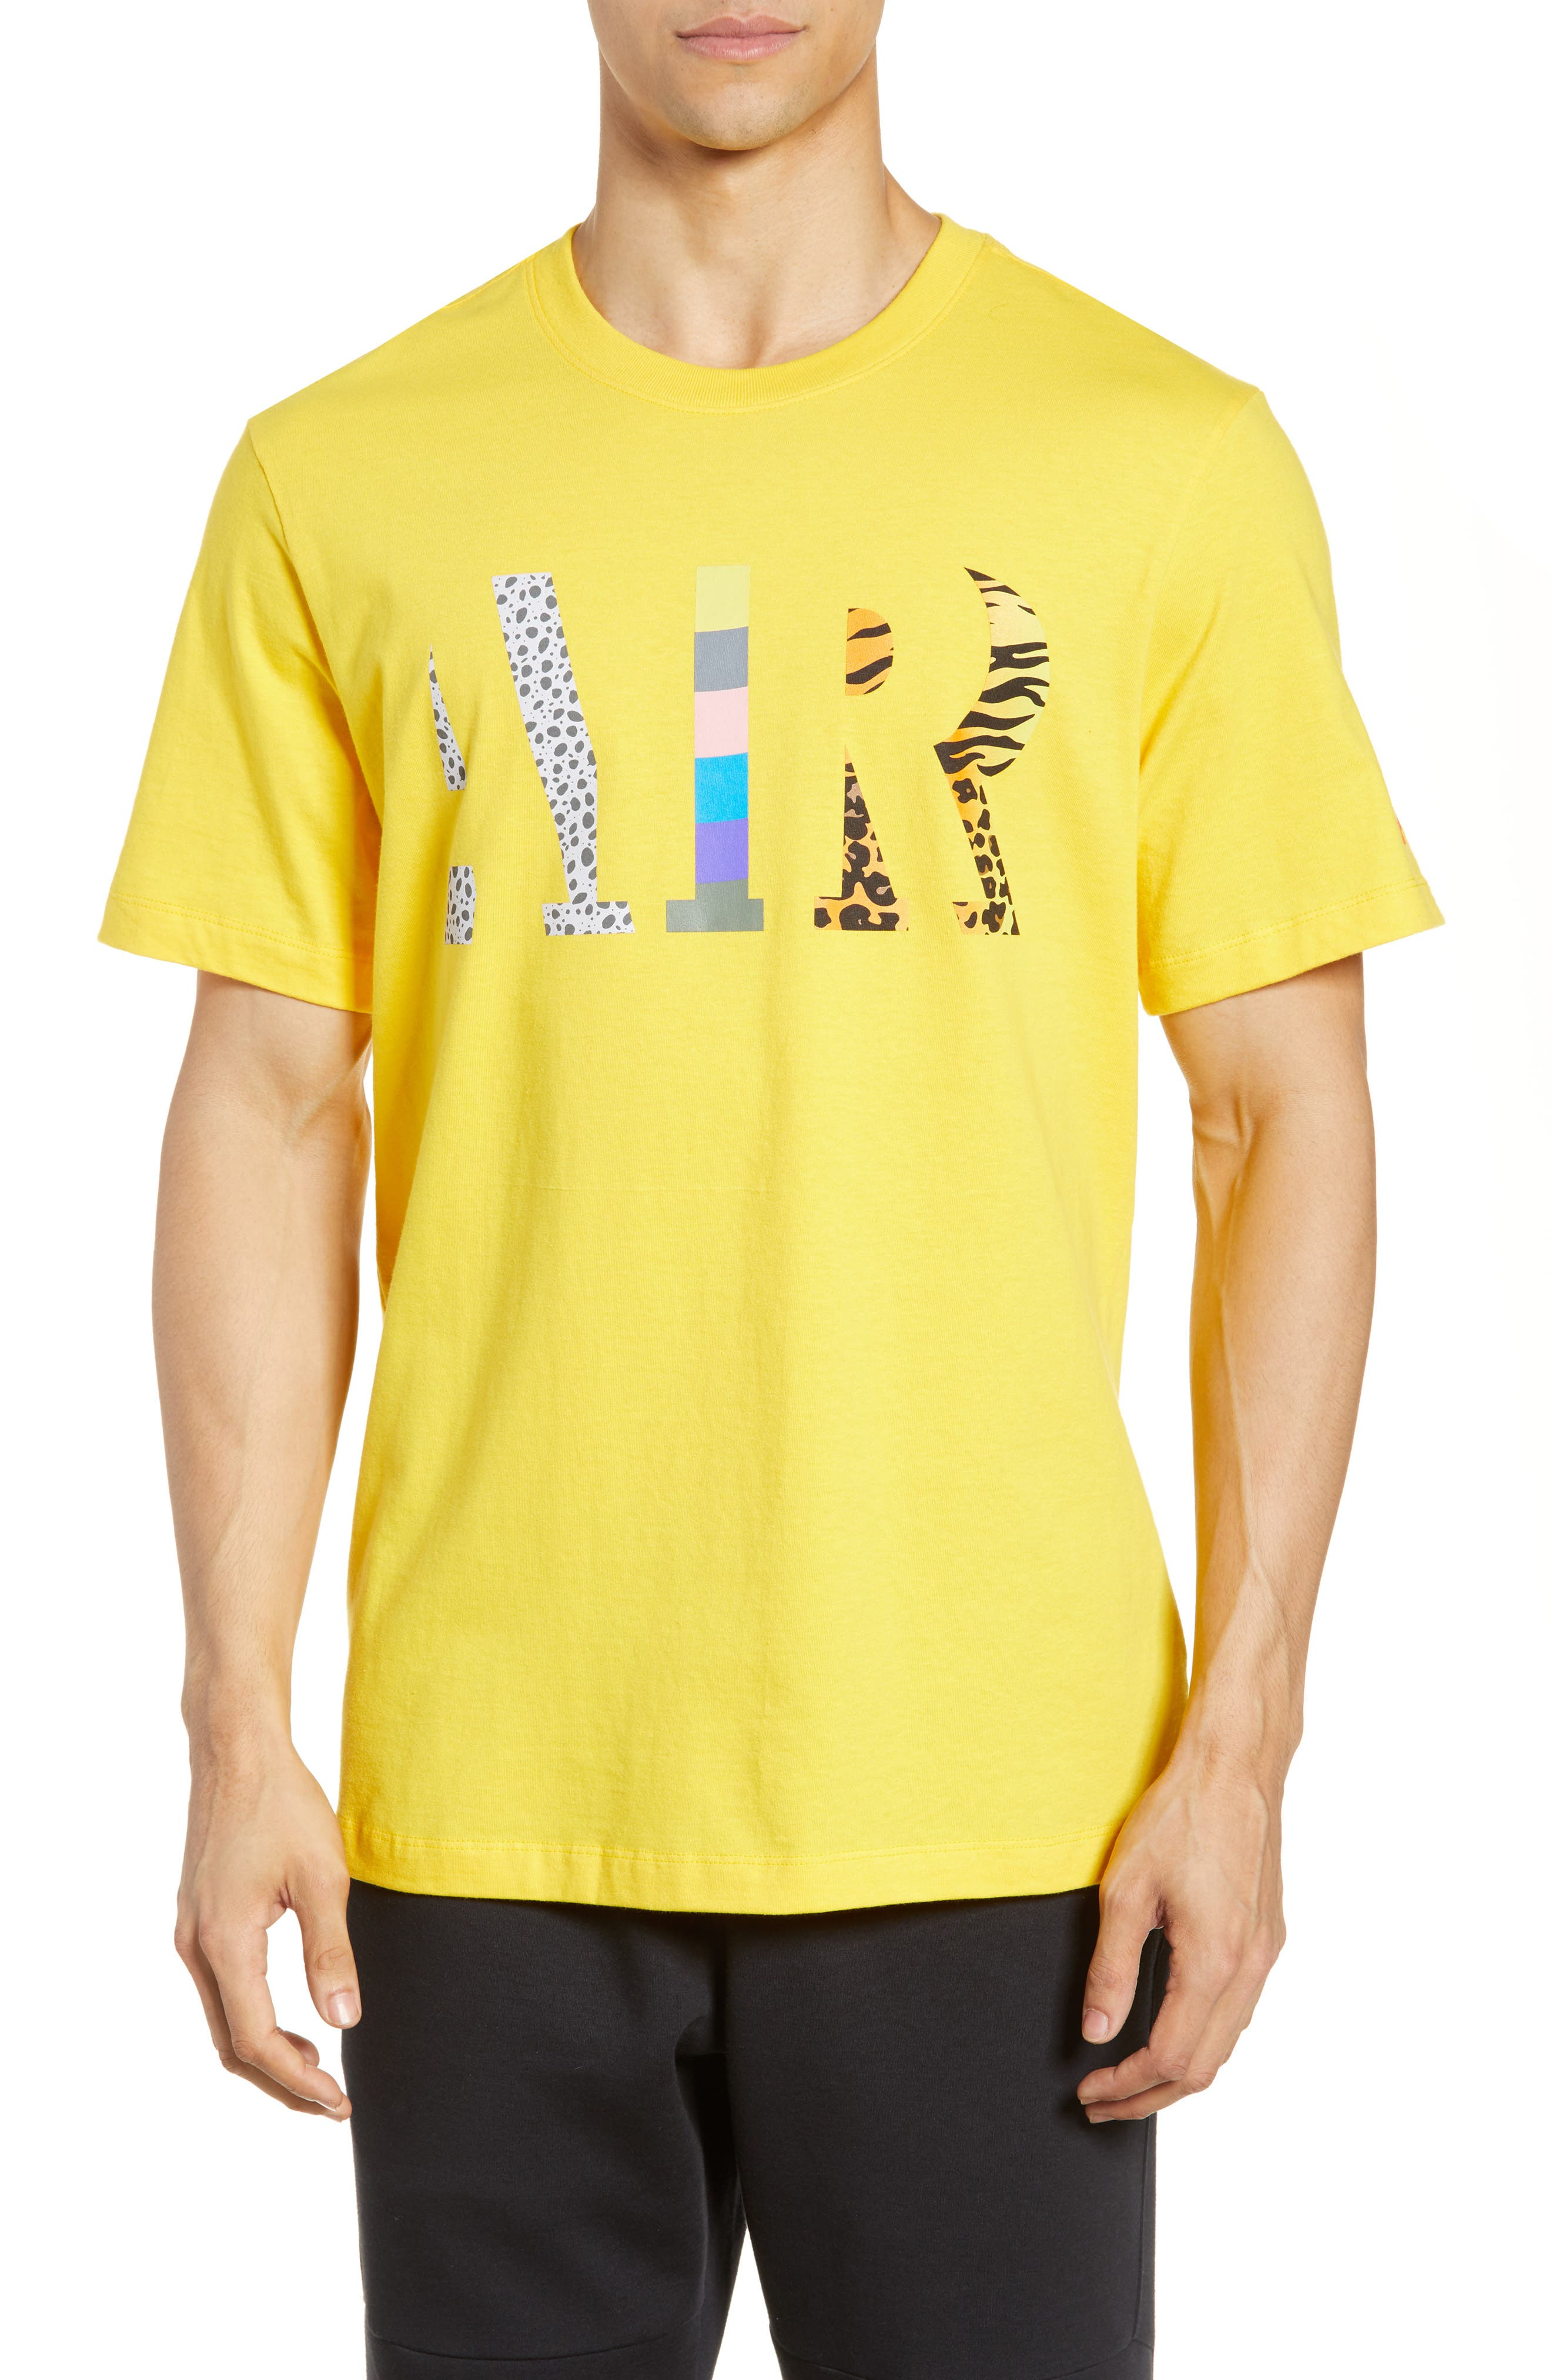 Nike Nsw Air Graphic T-Shirt